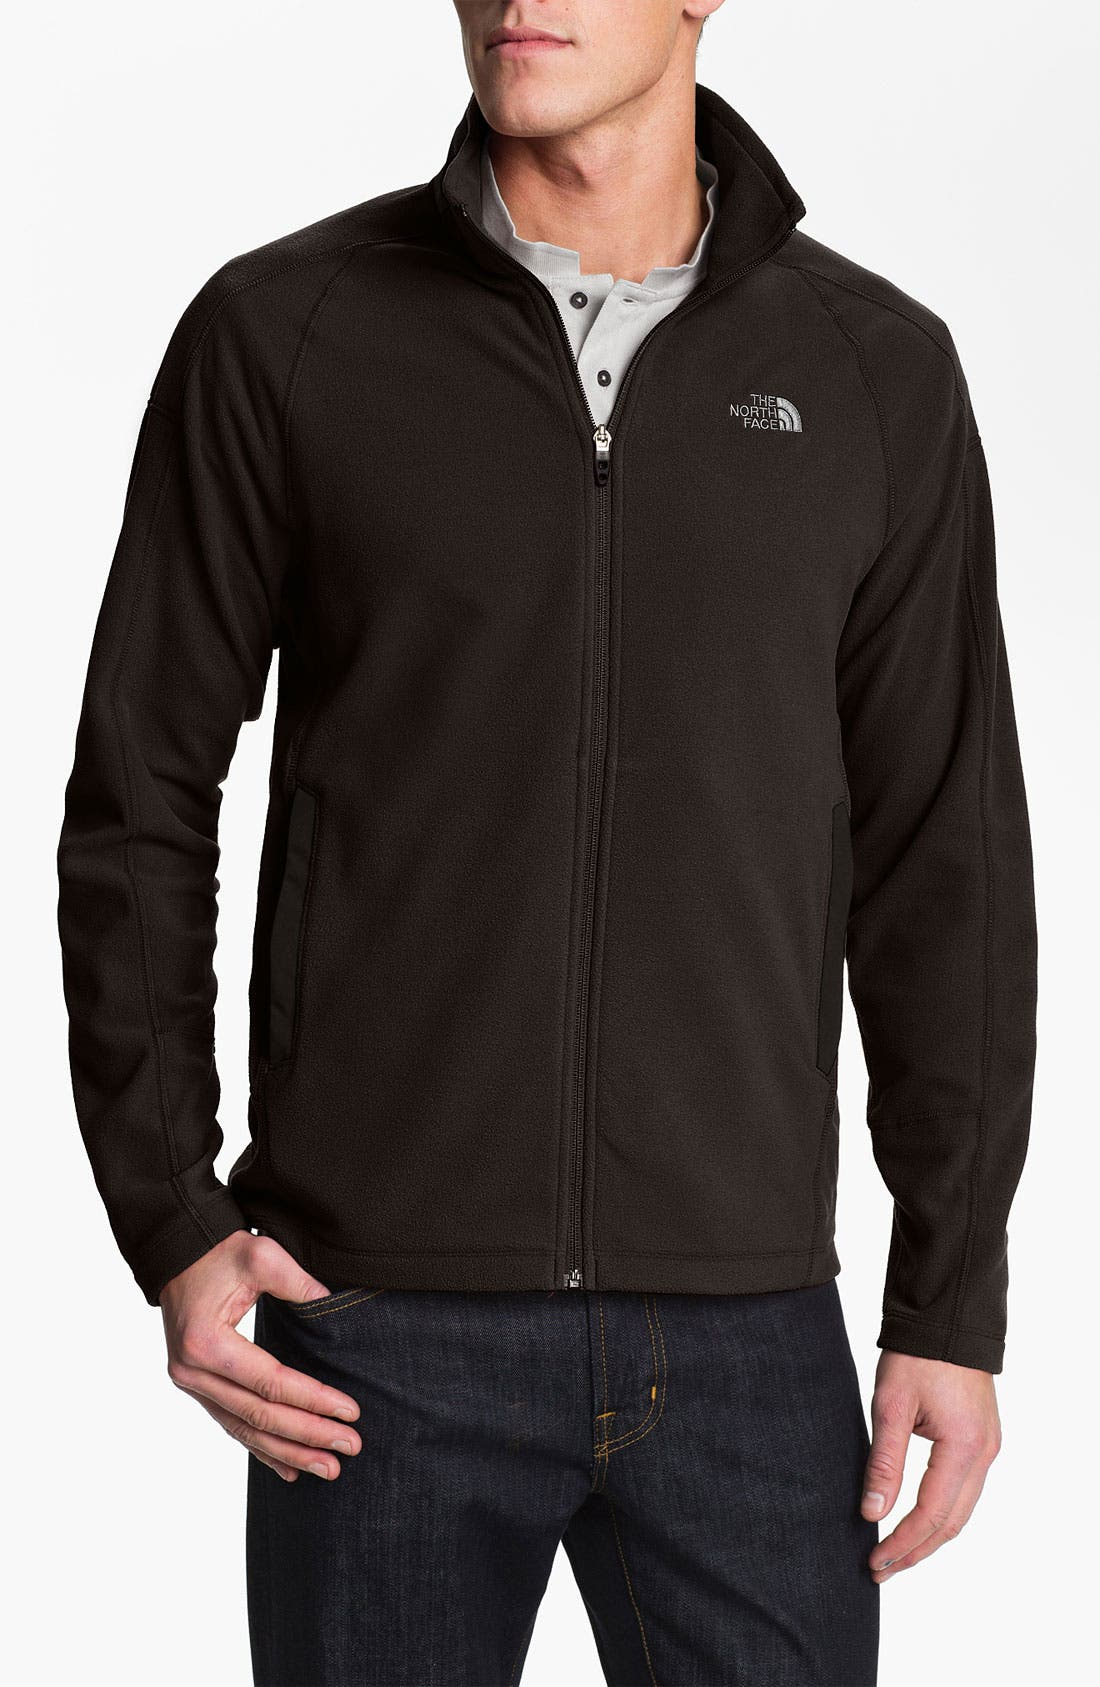 Alternate Image 1 Selected - The North Face 'RDT 100' FlashDry™ Full Zip Fleece Jacket